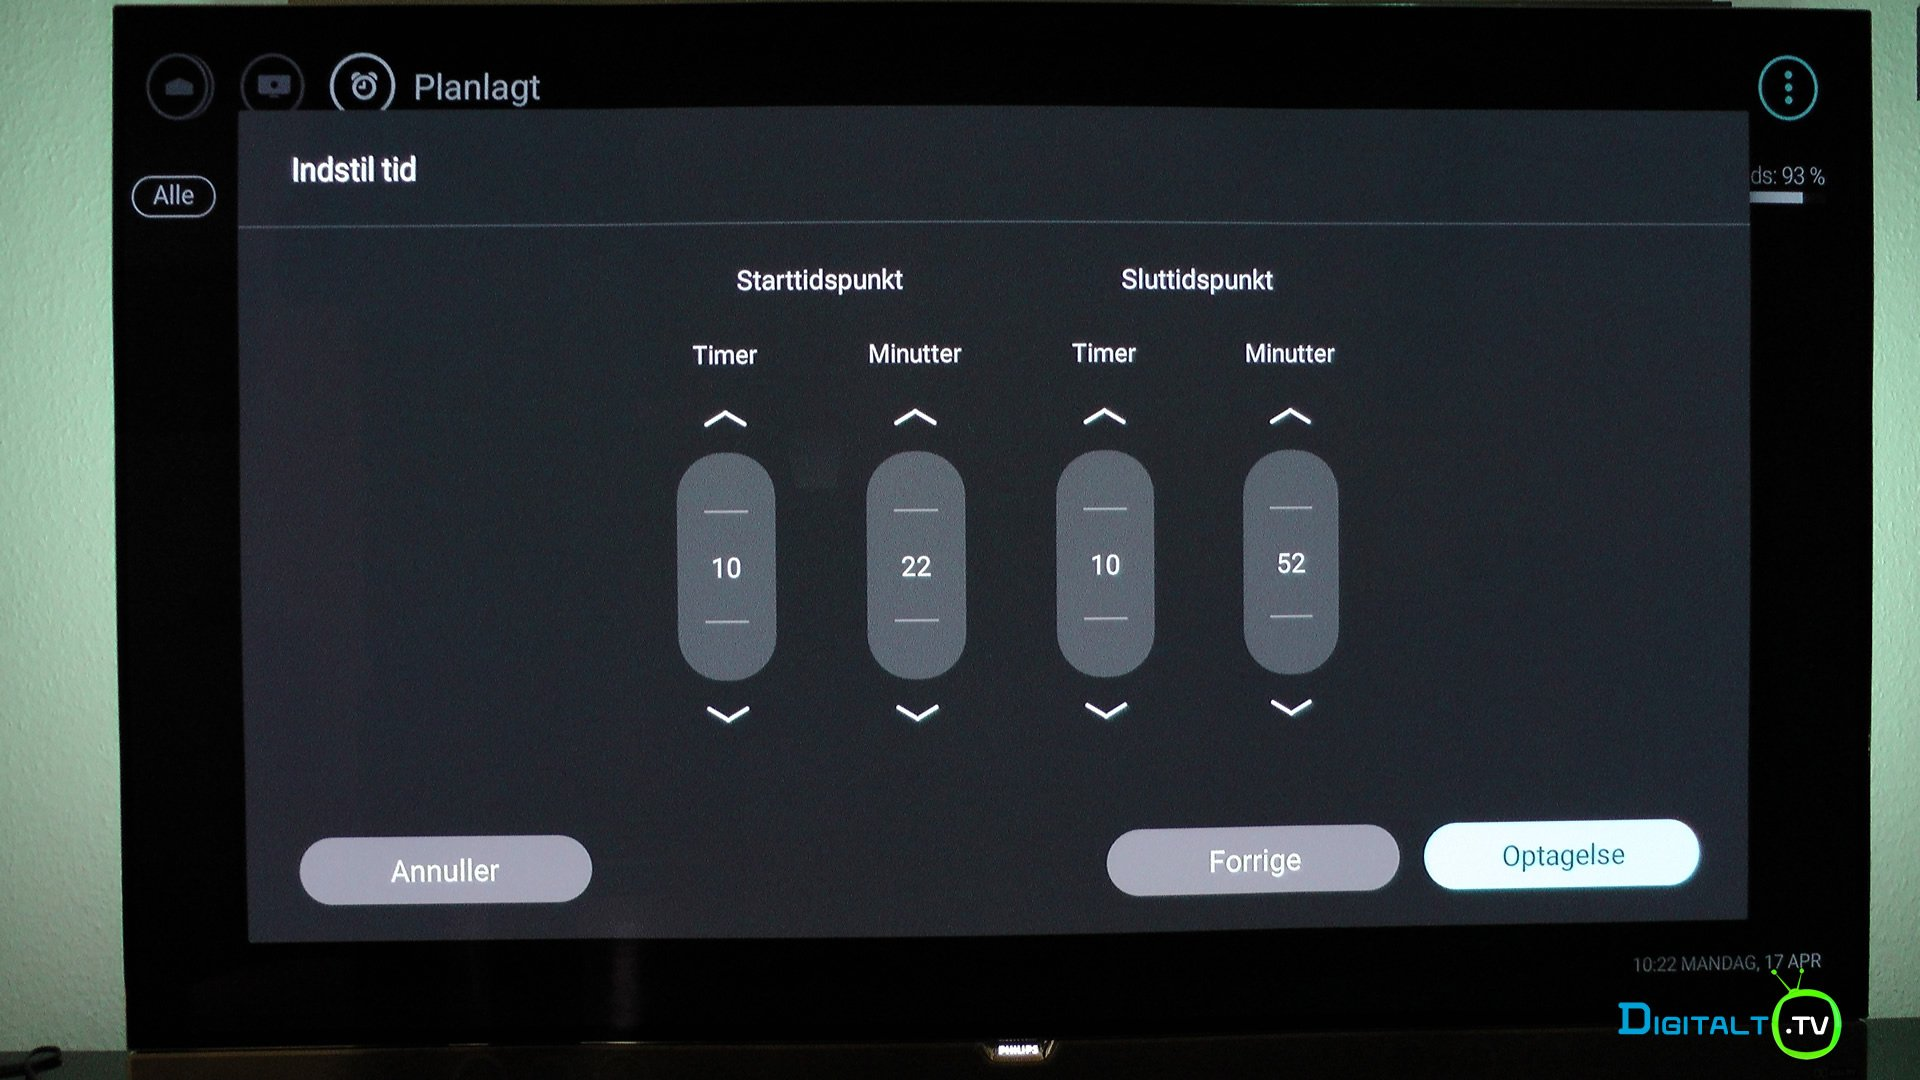 Philips 55POS901F pvr timer